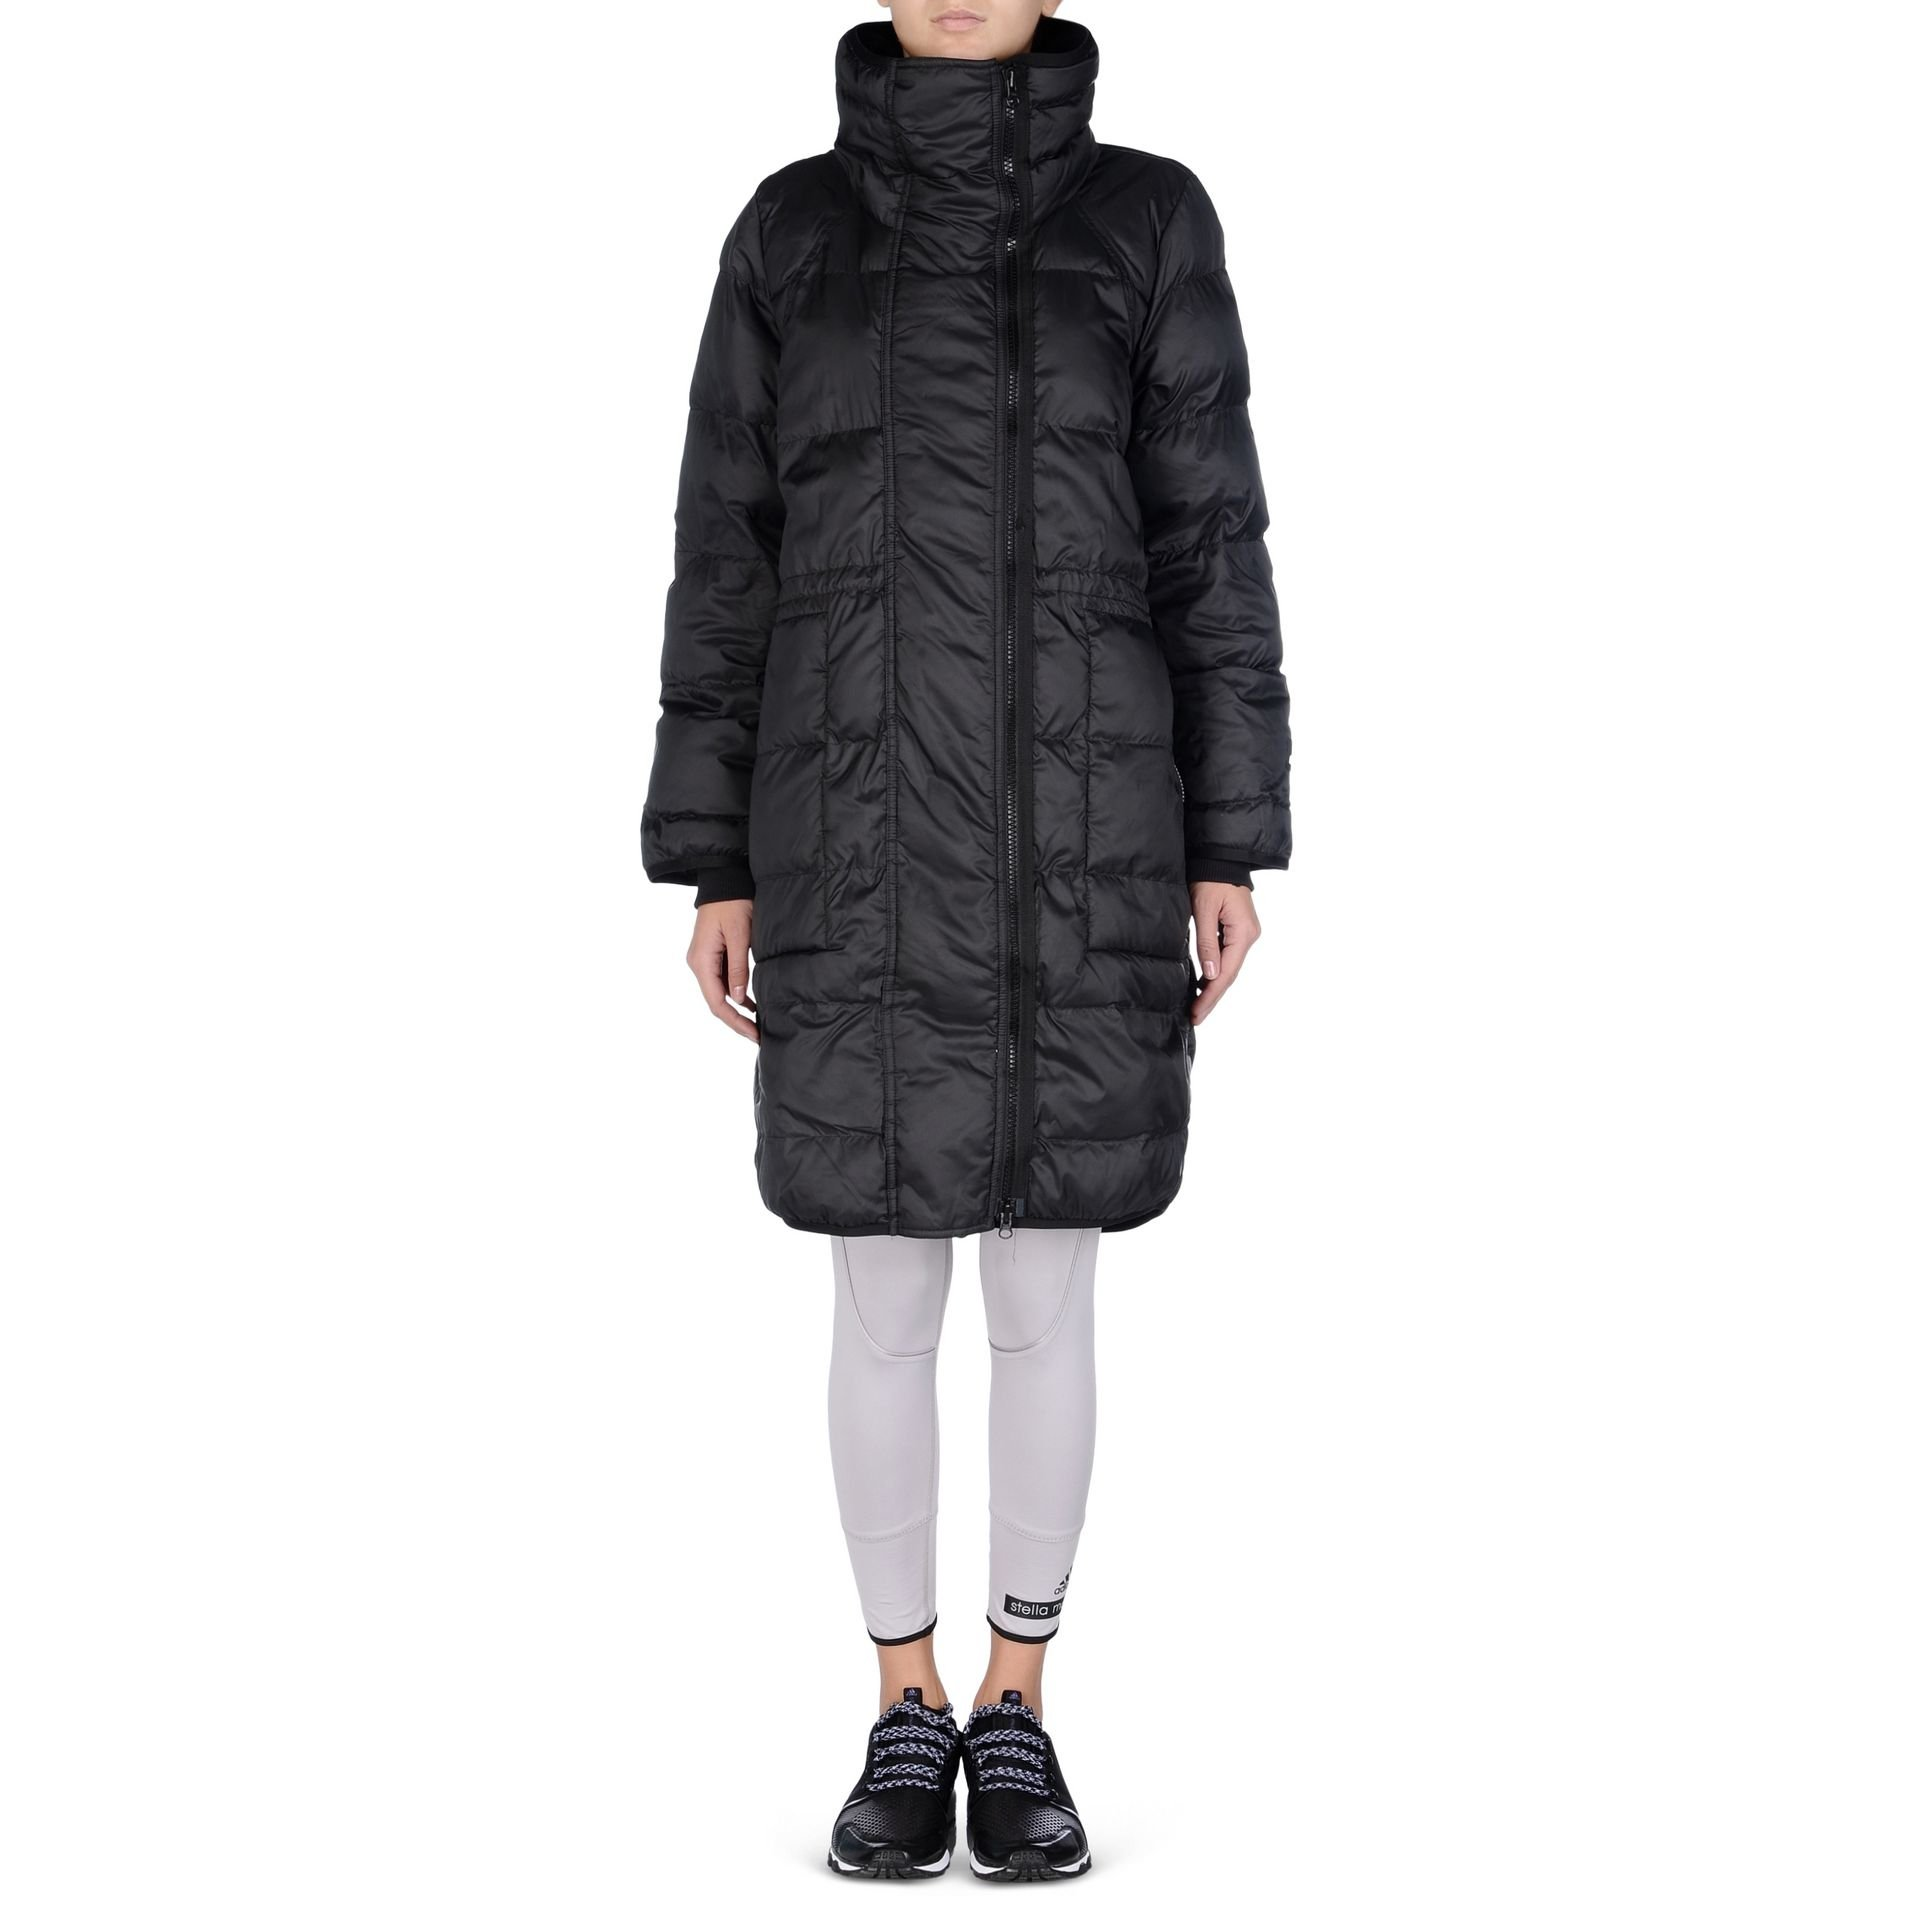 Long hooded quilted jacket | Adidas By Stella McCartney